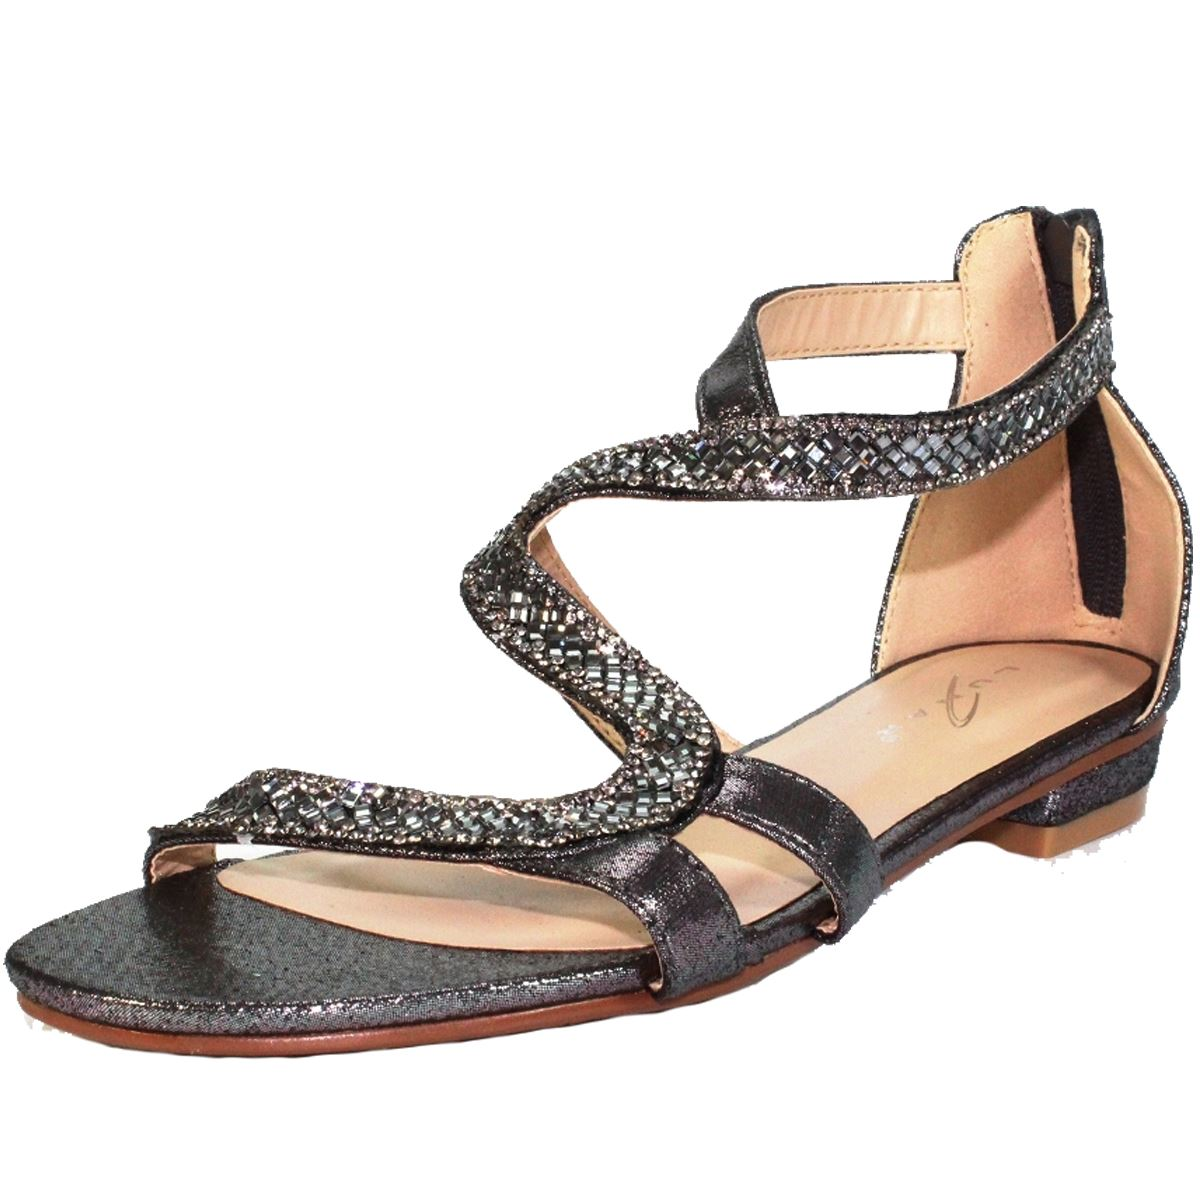 JLH084 Arabia Zipper Diamante Faux Leather Low Flat Heel S Strap Sandals